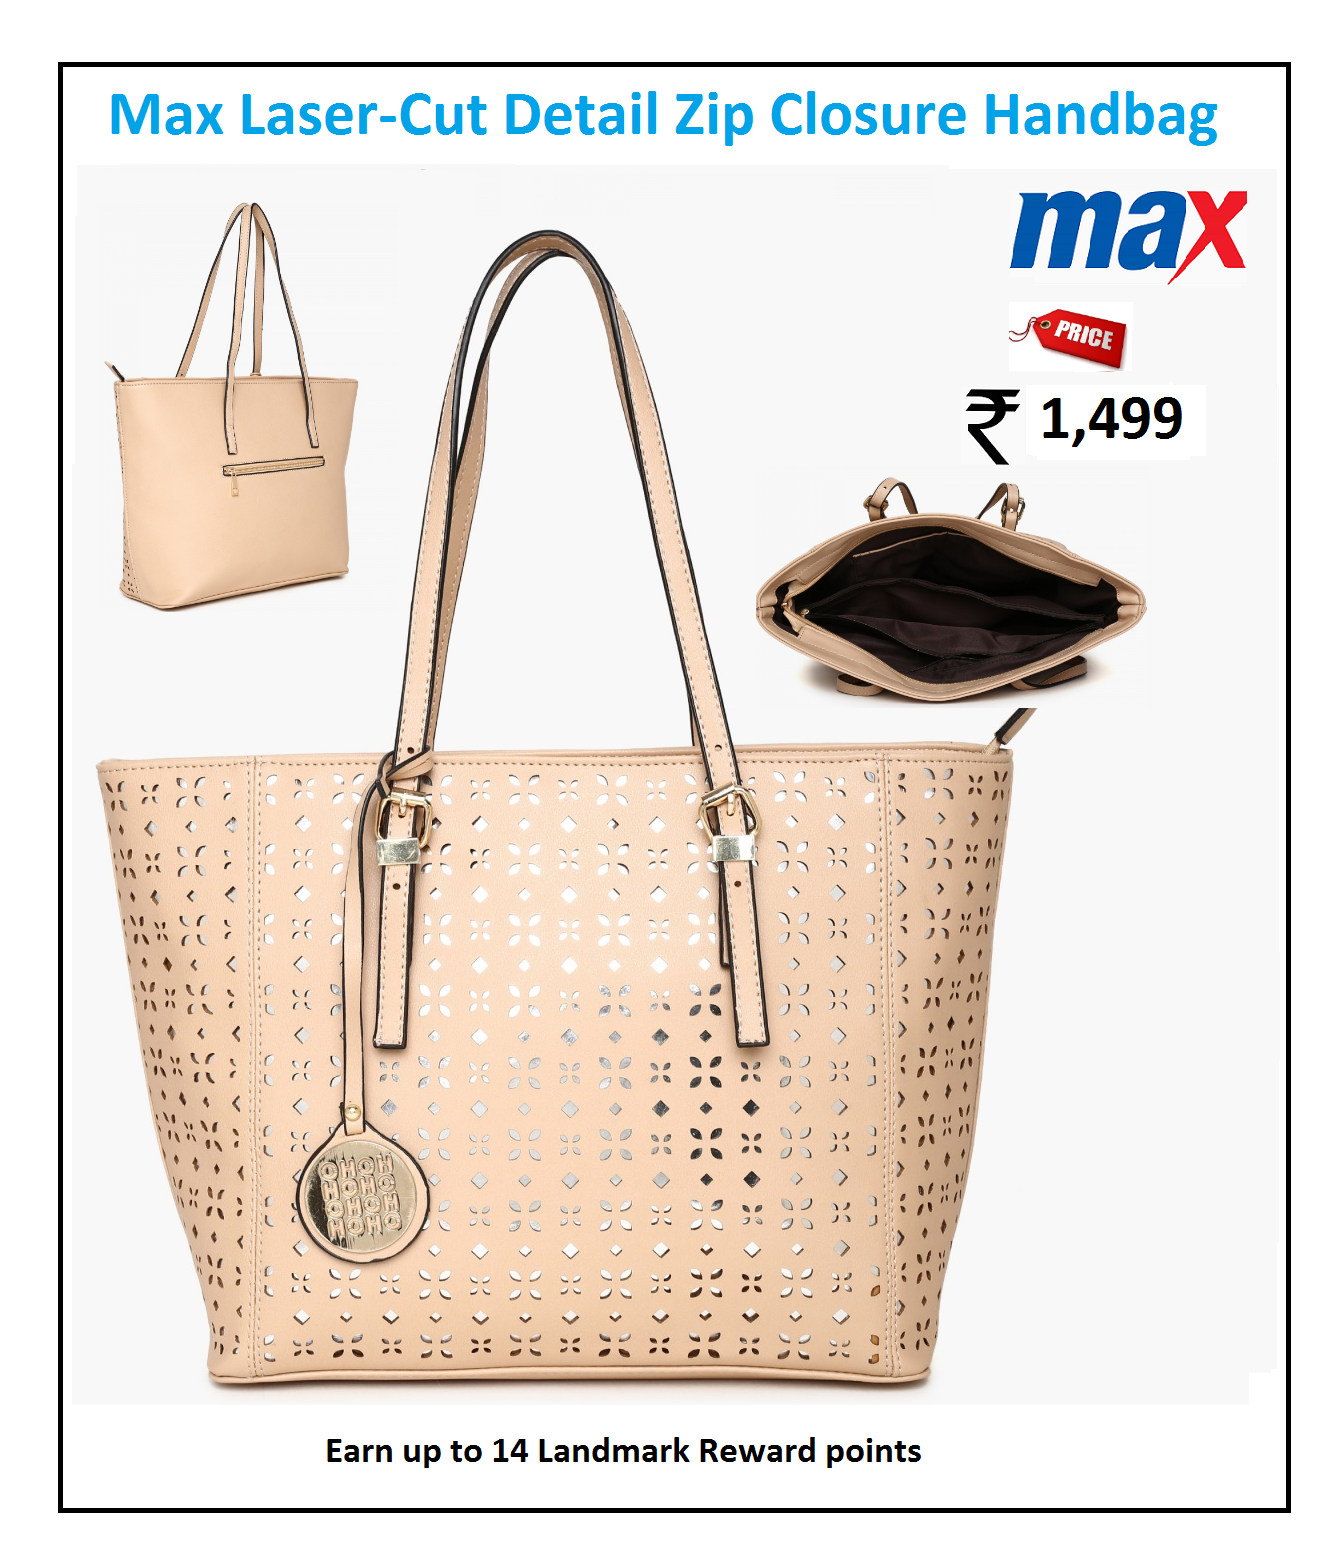 MAX Laser-Cut Detail Zip Closure Handbag   Ladies Handbags   Pinterest e7a9a4aee4